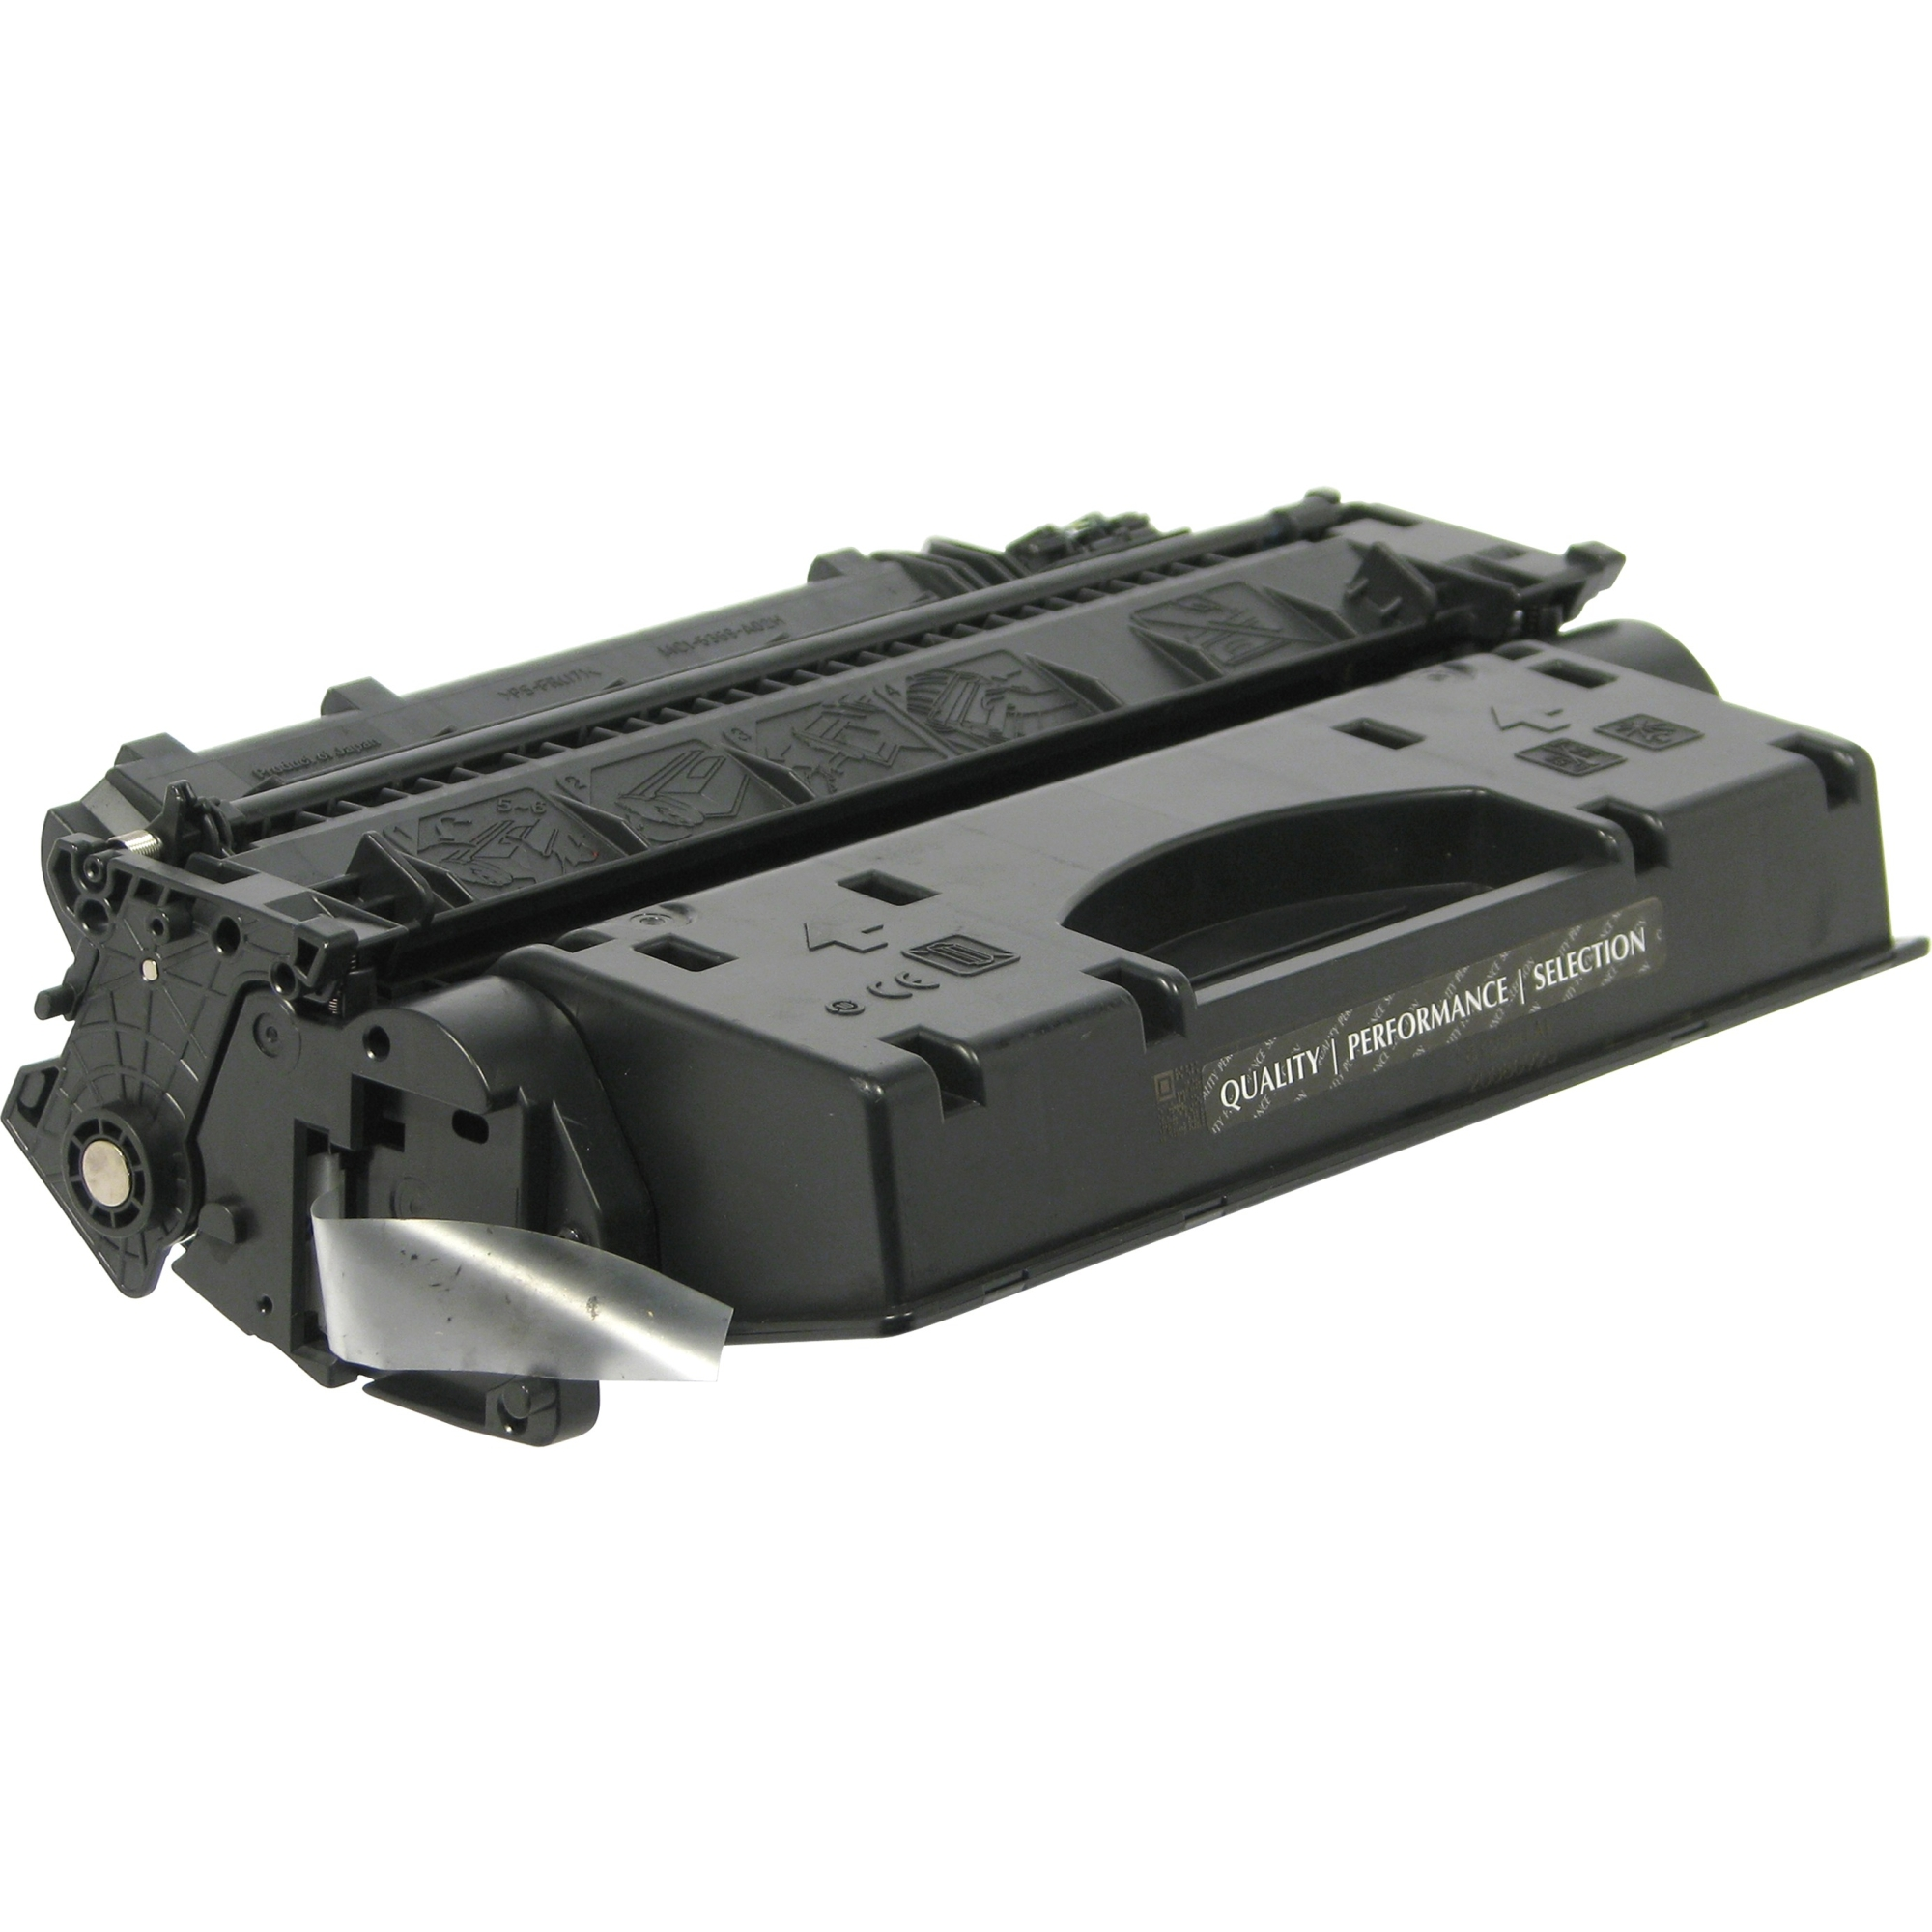 Toner Cartridge - Replacement for HP (CF280X) - Black - Laser - High Yield - 6900 Page